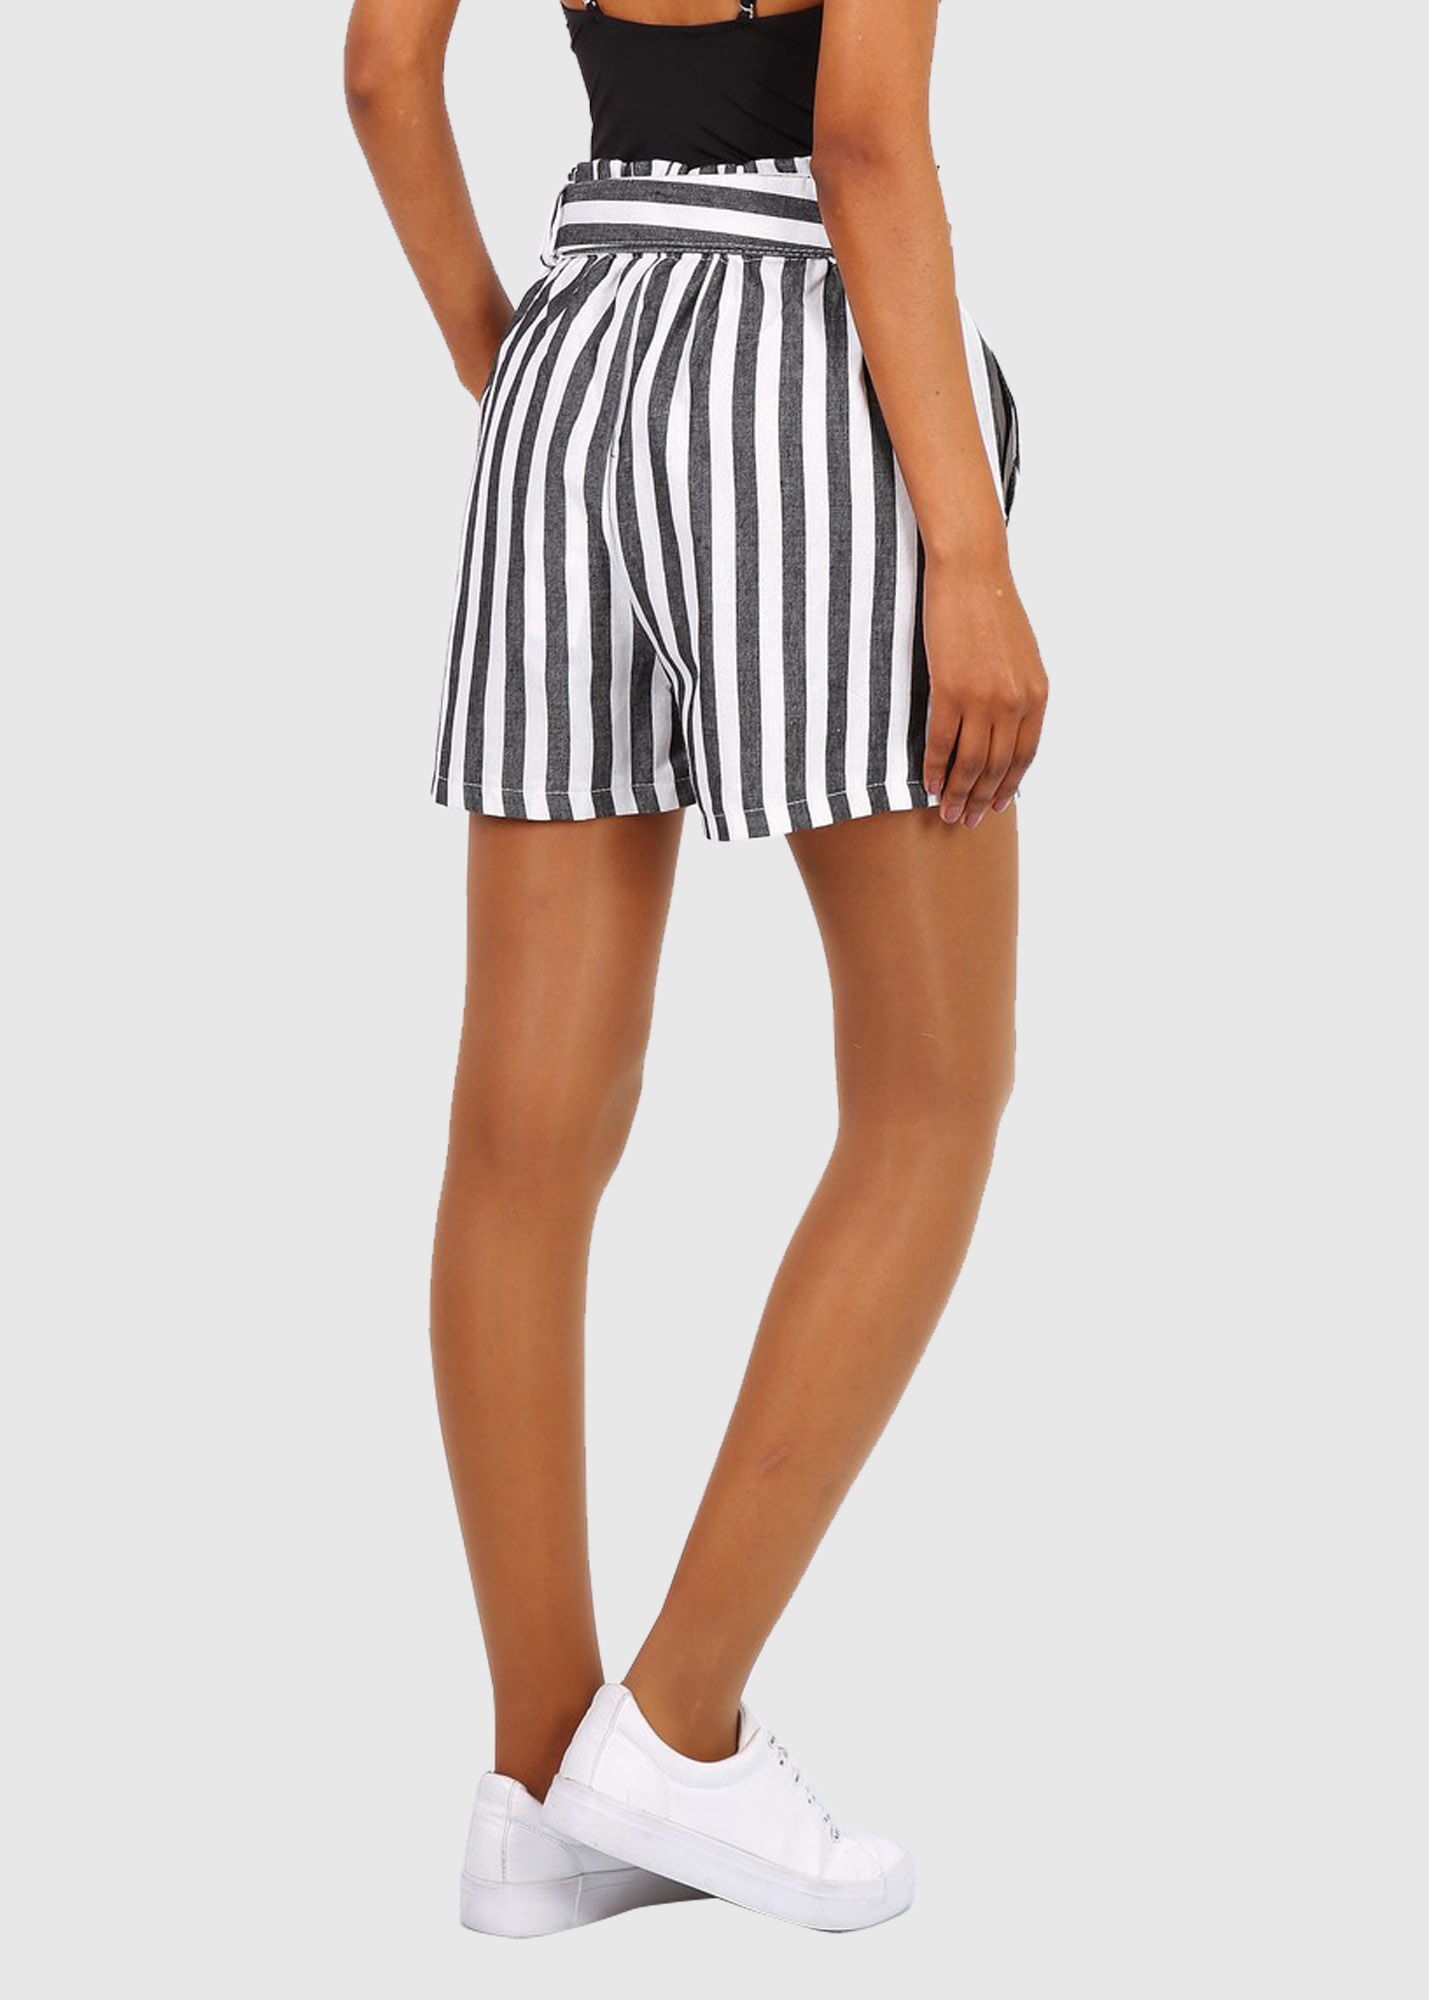 Photo №1 Marcella black striped shorts